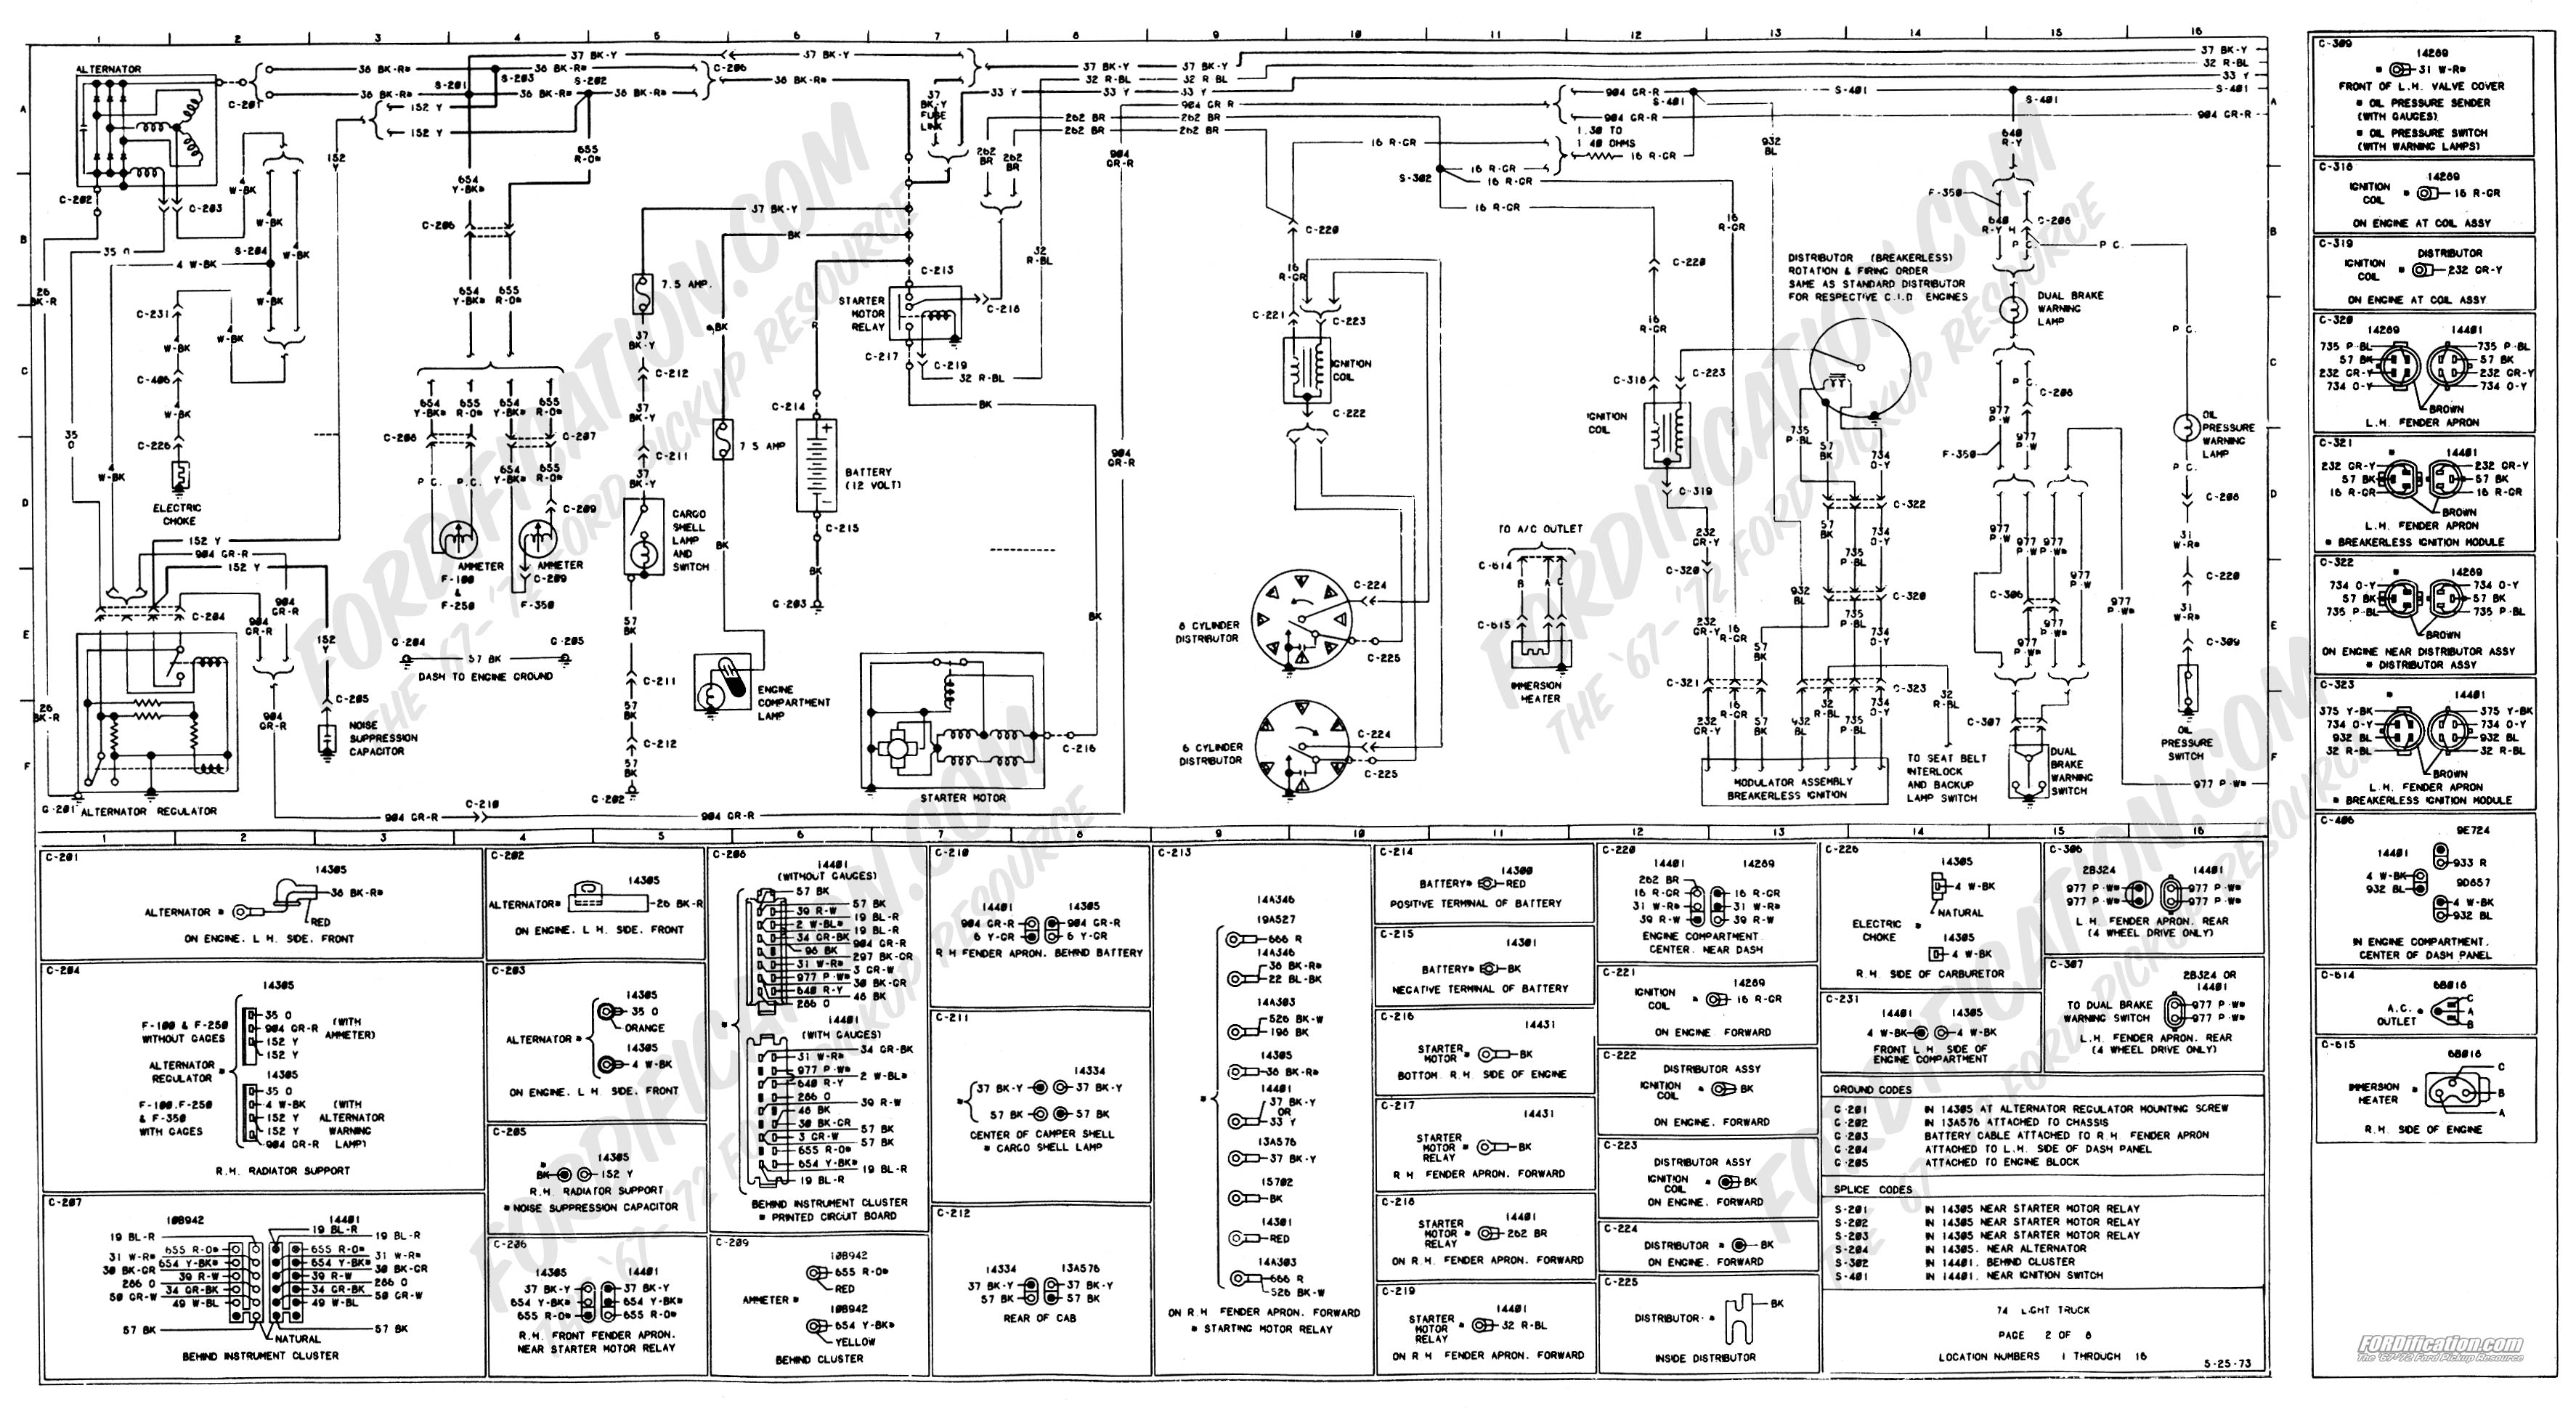 1973 1979 ford truck wiring diagrams schematics fordification net rh fordification net 1969 Ford F100 Wiring Diagram 1974 ford f100 steering column wiring diagram